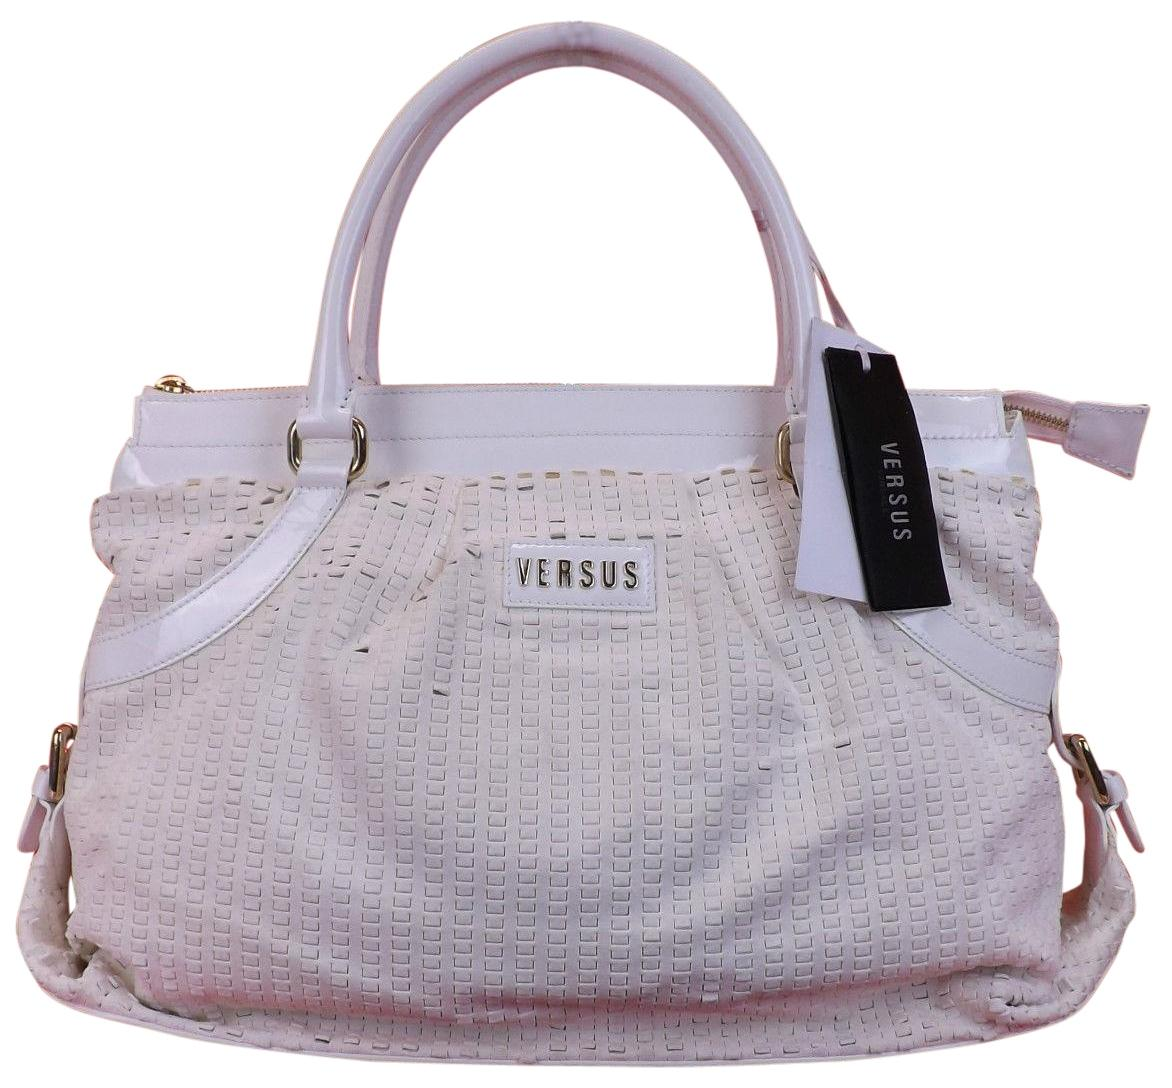 Versus logo zipped shoulder bag Buy Cheap Limited Edition 3TVvcu1mgE